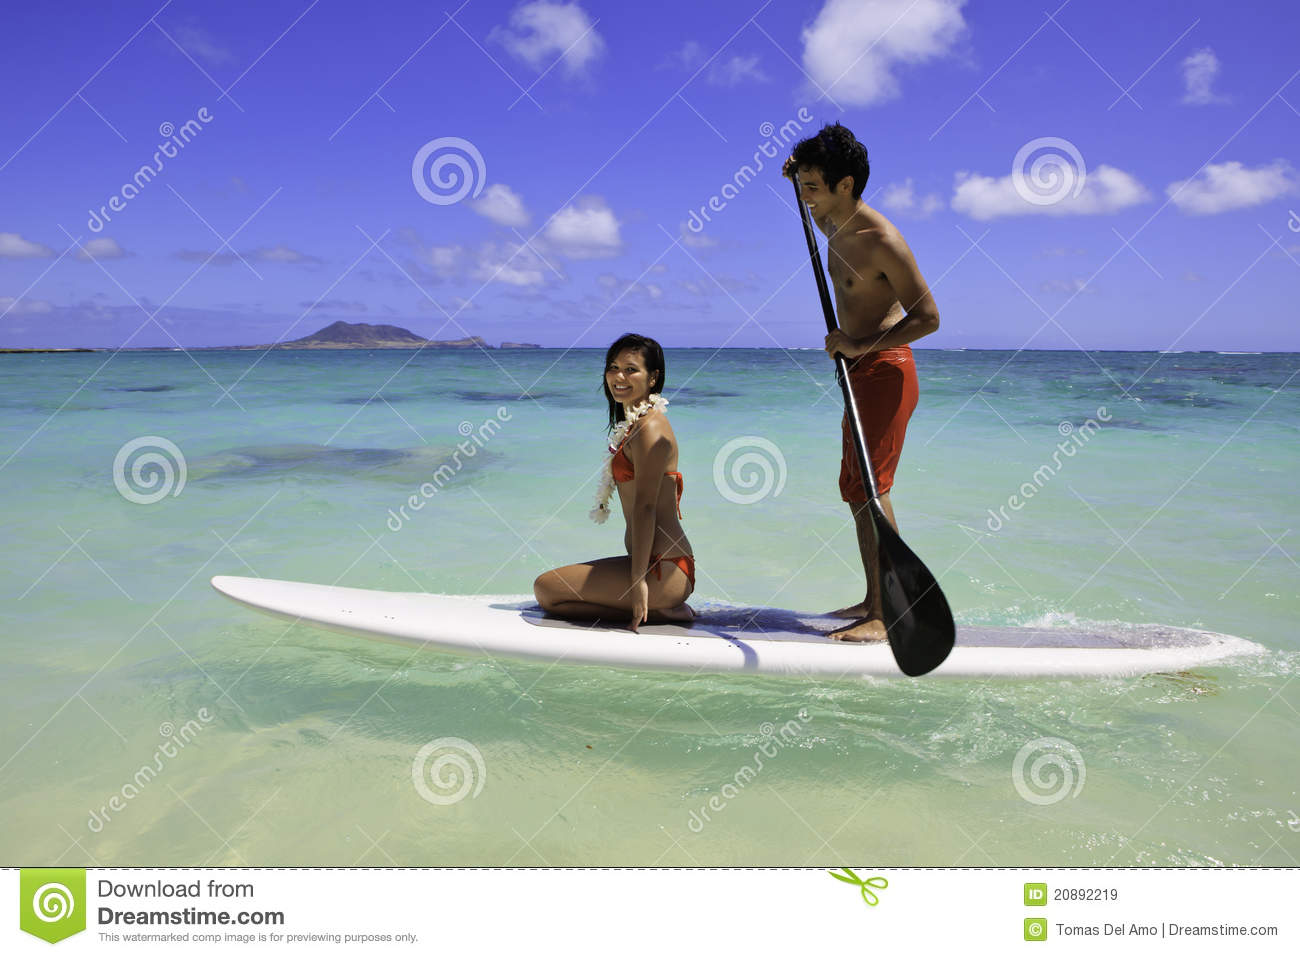 Couple with their paddle board